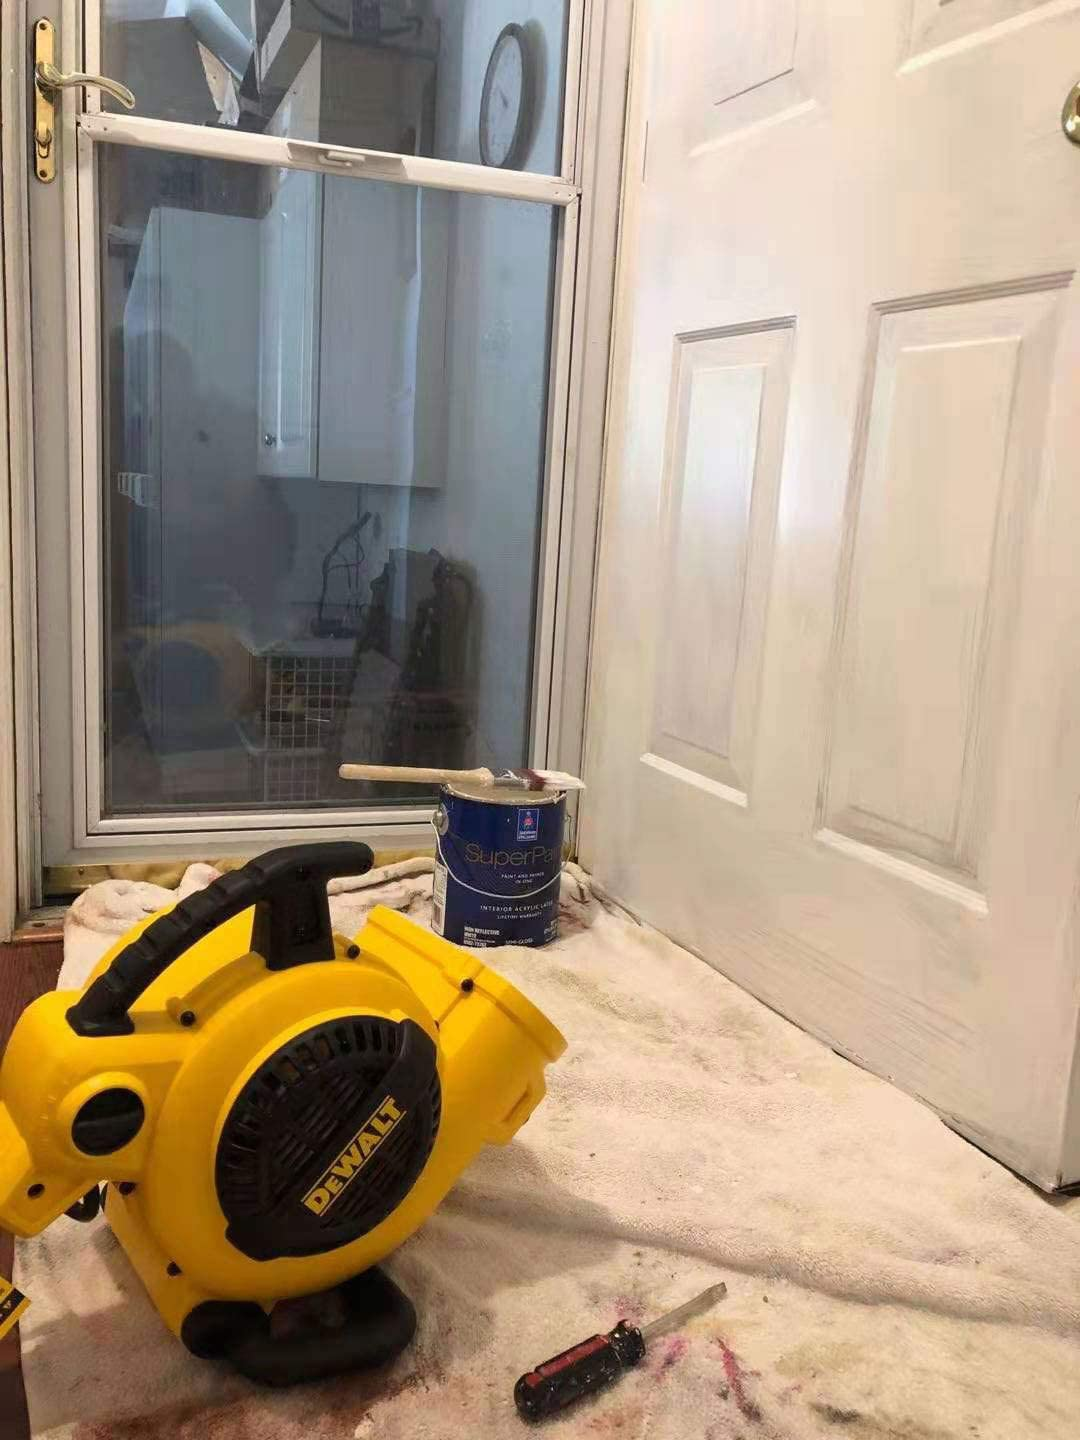 DeWalt DXAM-2260 Portable Air Mover Floor Dryer